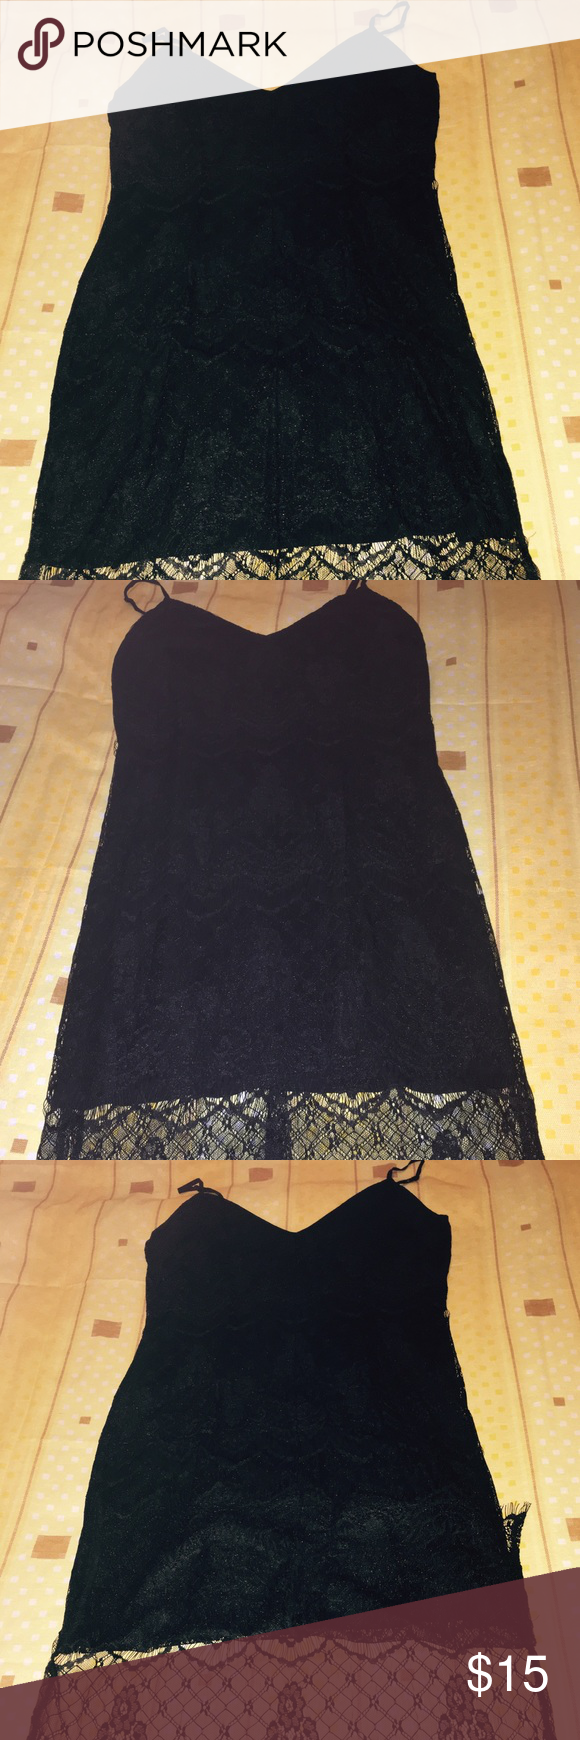 Black lace dress. Black lace dress size M zipper in the back cuts on the and of each side really comfortable. Forever 21 Dresses Midi